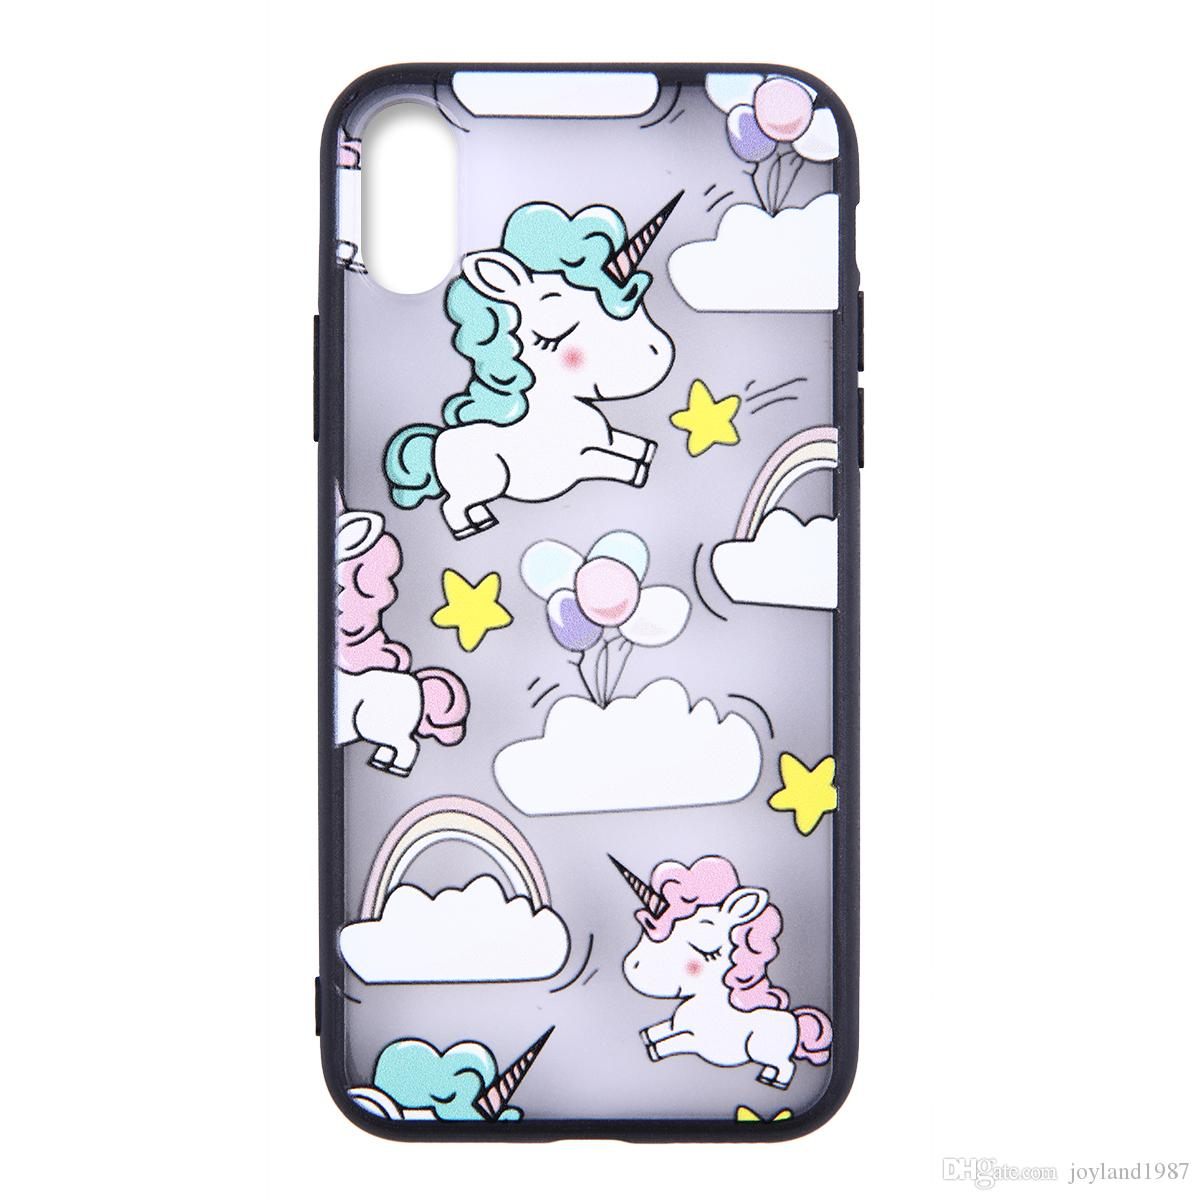 Cute Fashion Rainbow Unicorn painted Phone Case For iPhone 5 5s se 6 6S 6plus 7 7plus 8 8s plus X Company customized